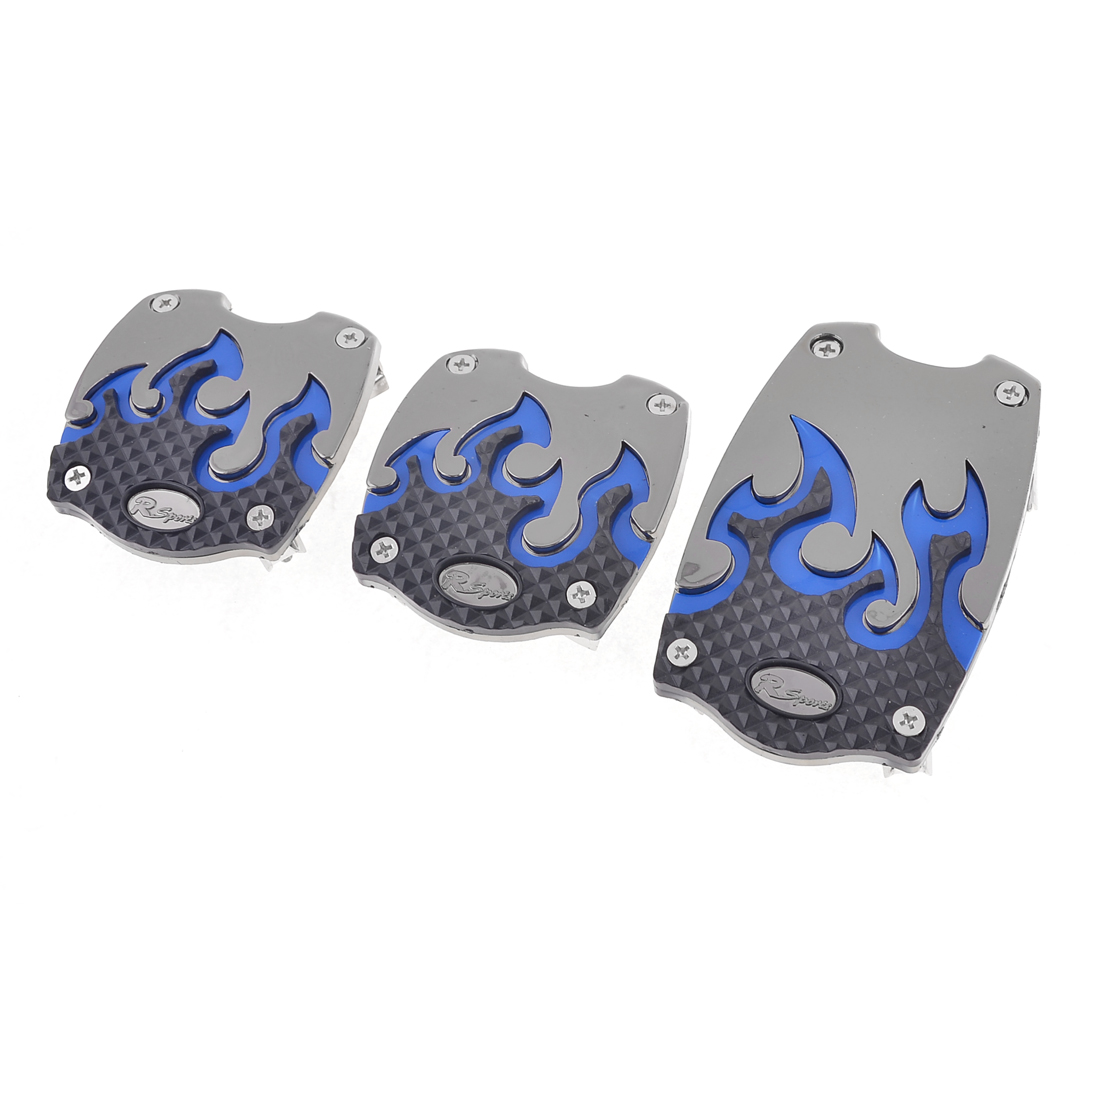 Truck Automatic Blue Nonslip Gas Brake Clutch Pedal Covers 3 Pcs